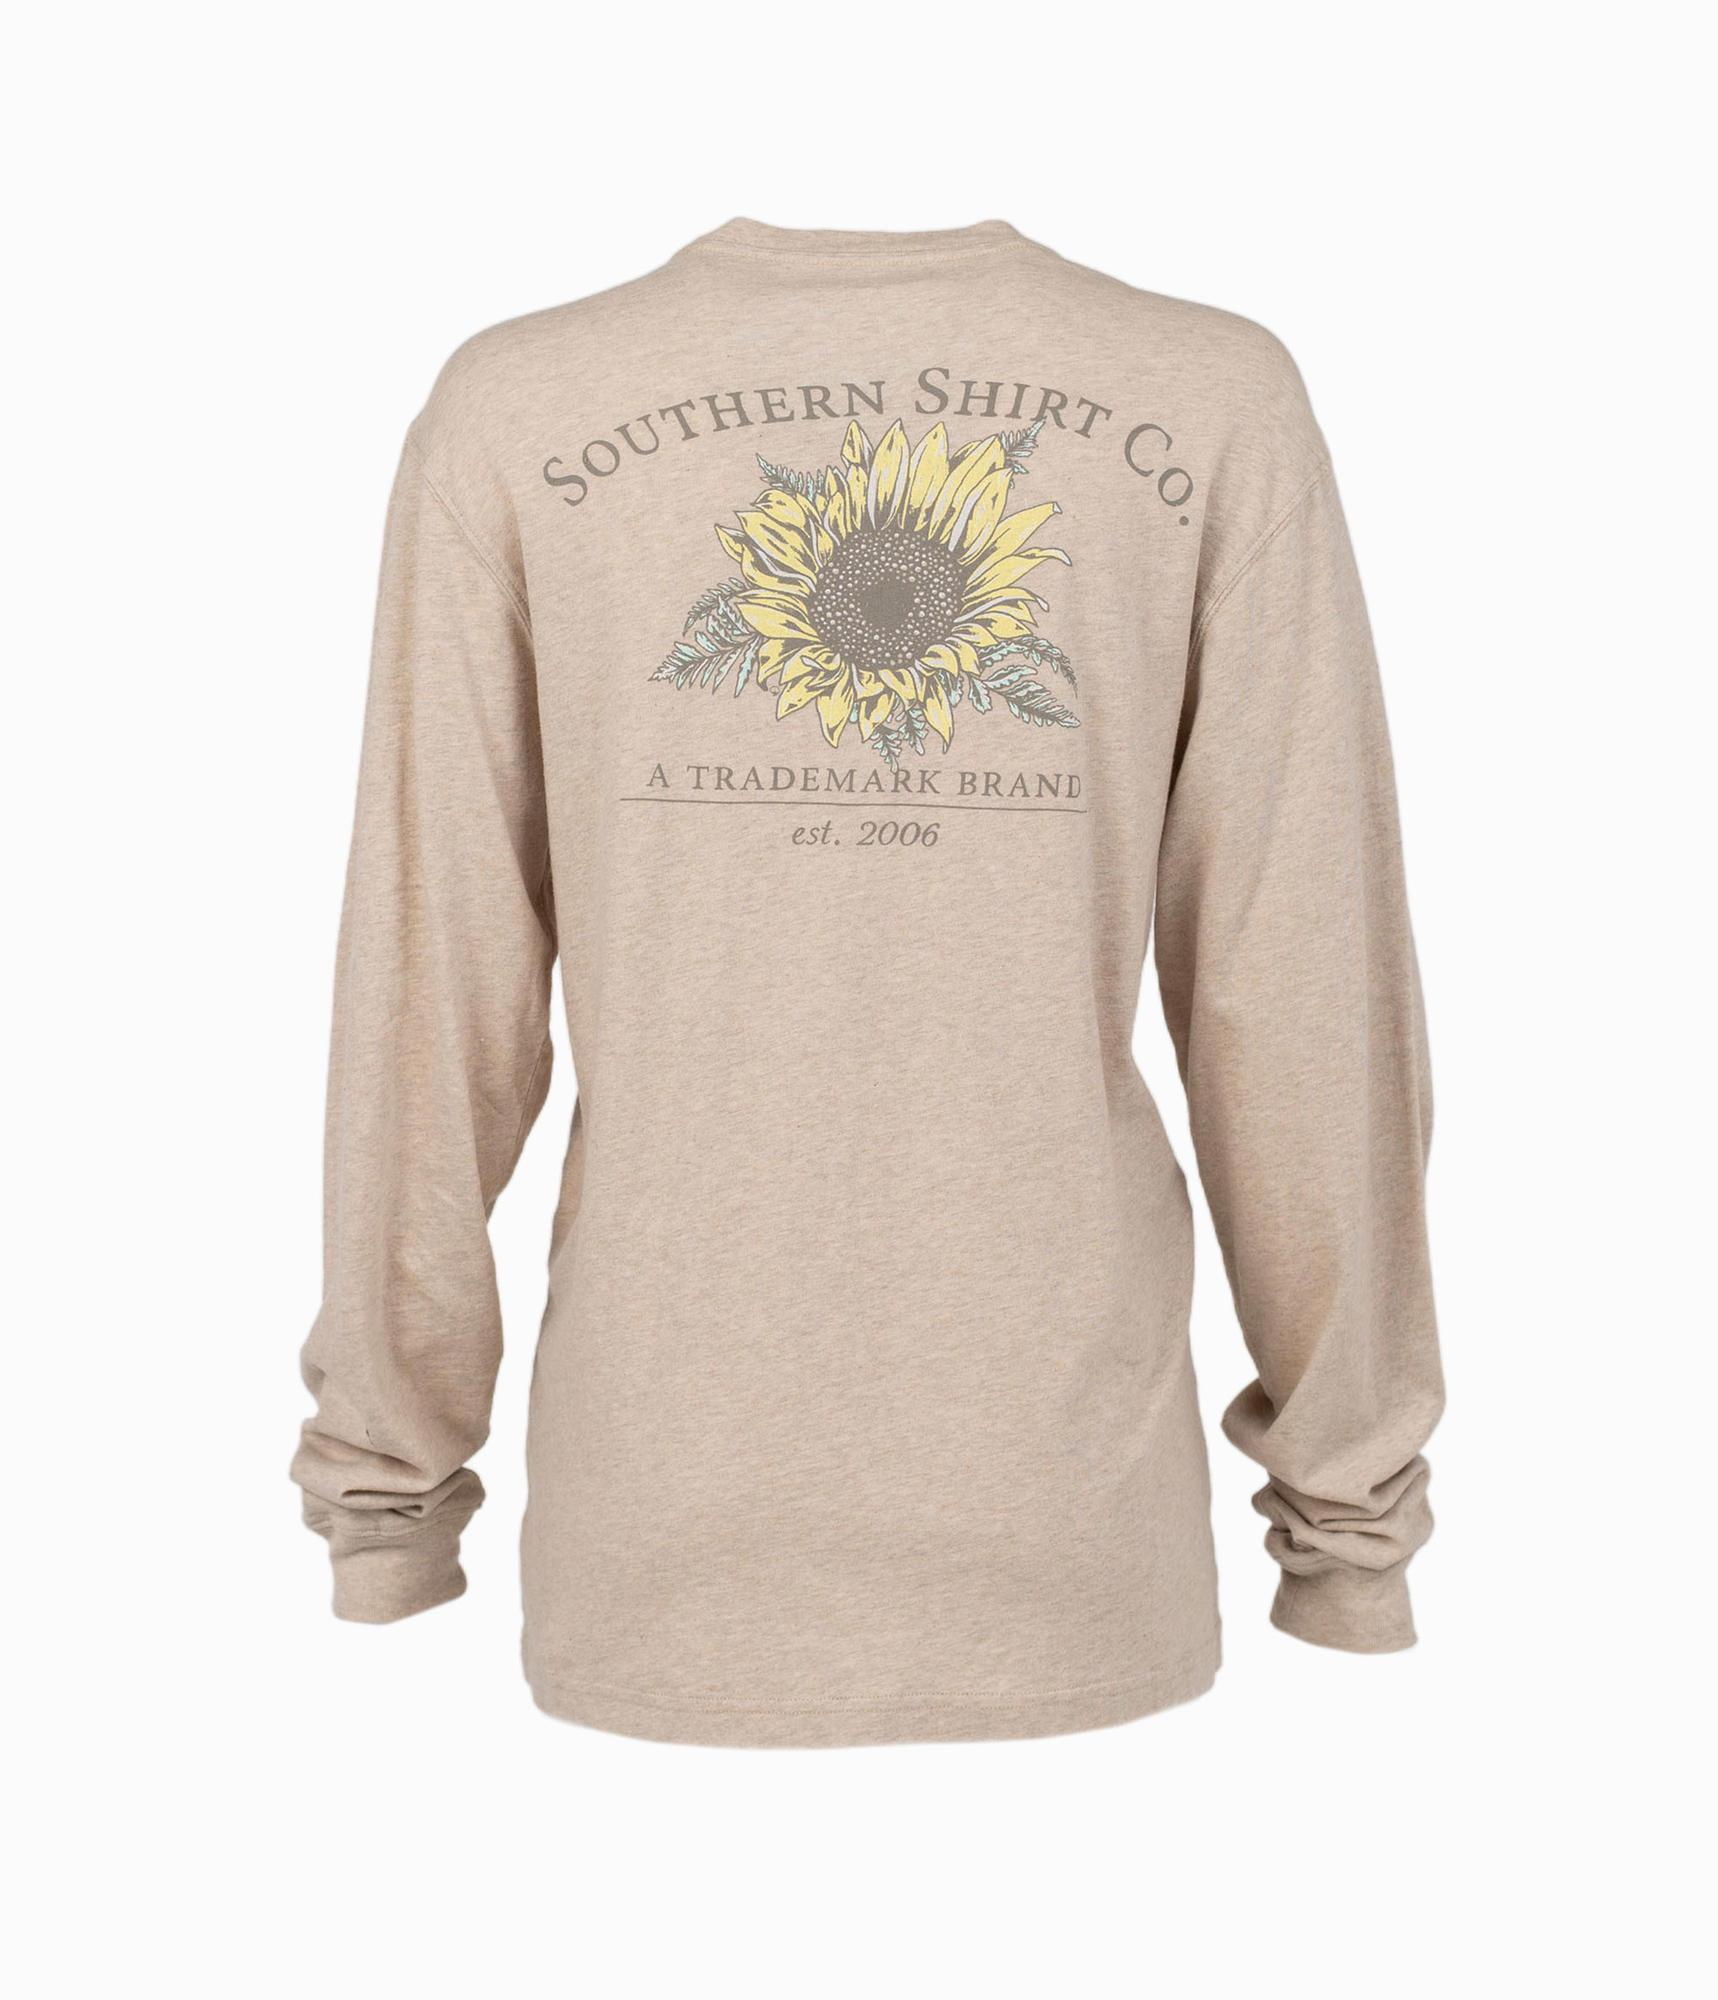 SOUTHERN SHIRT CO. Women's Tees OATMEAL / XS Southern Shirt Harvest Flower LS Tee || David's Clothing 2T185-680